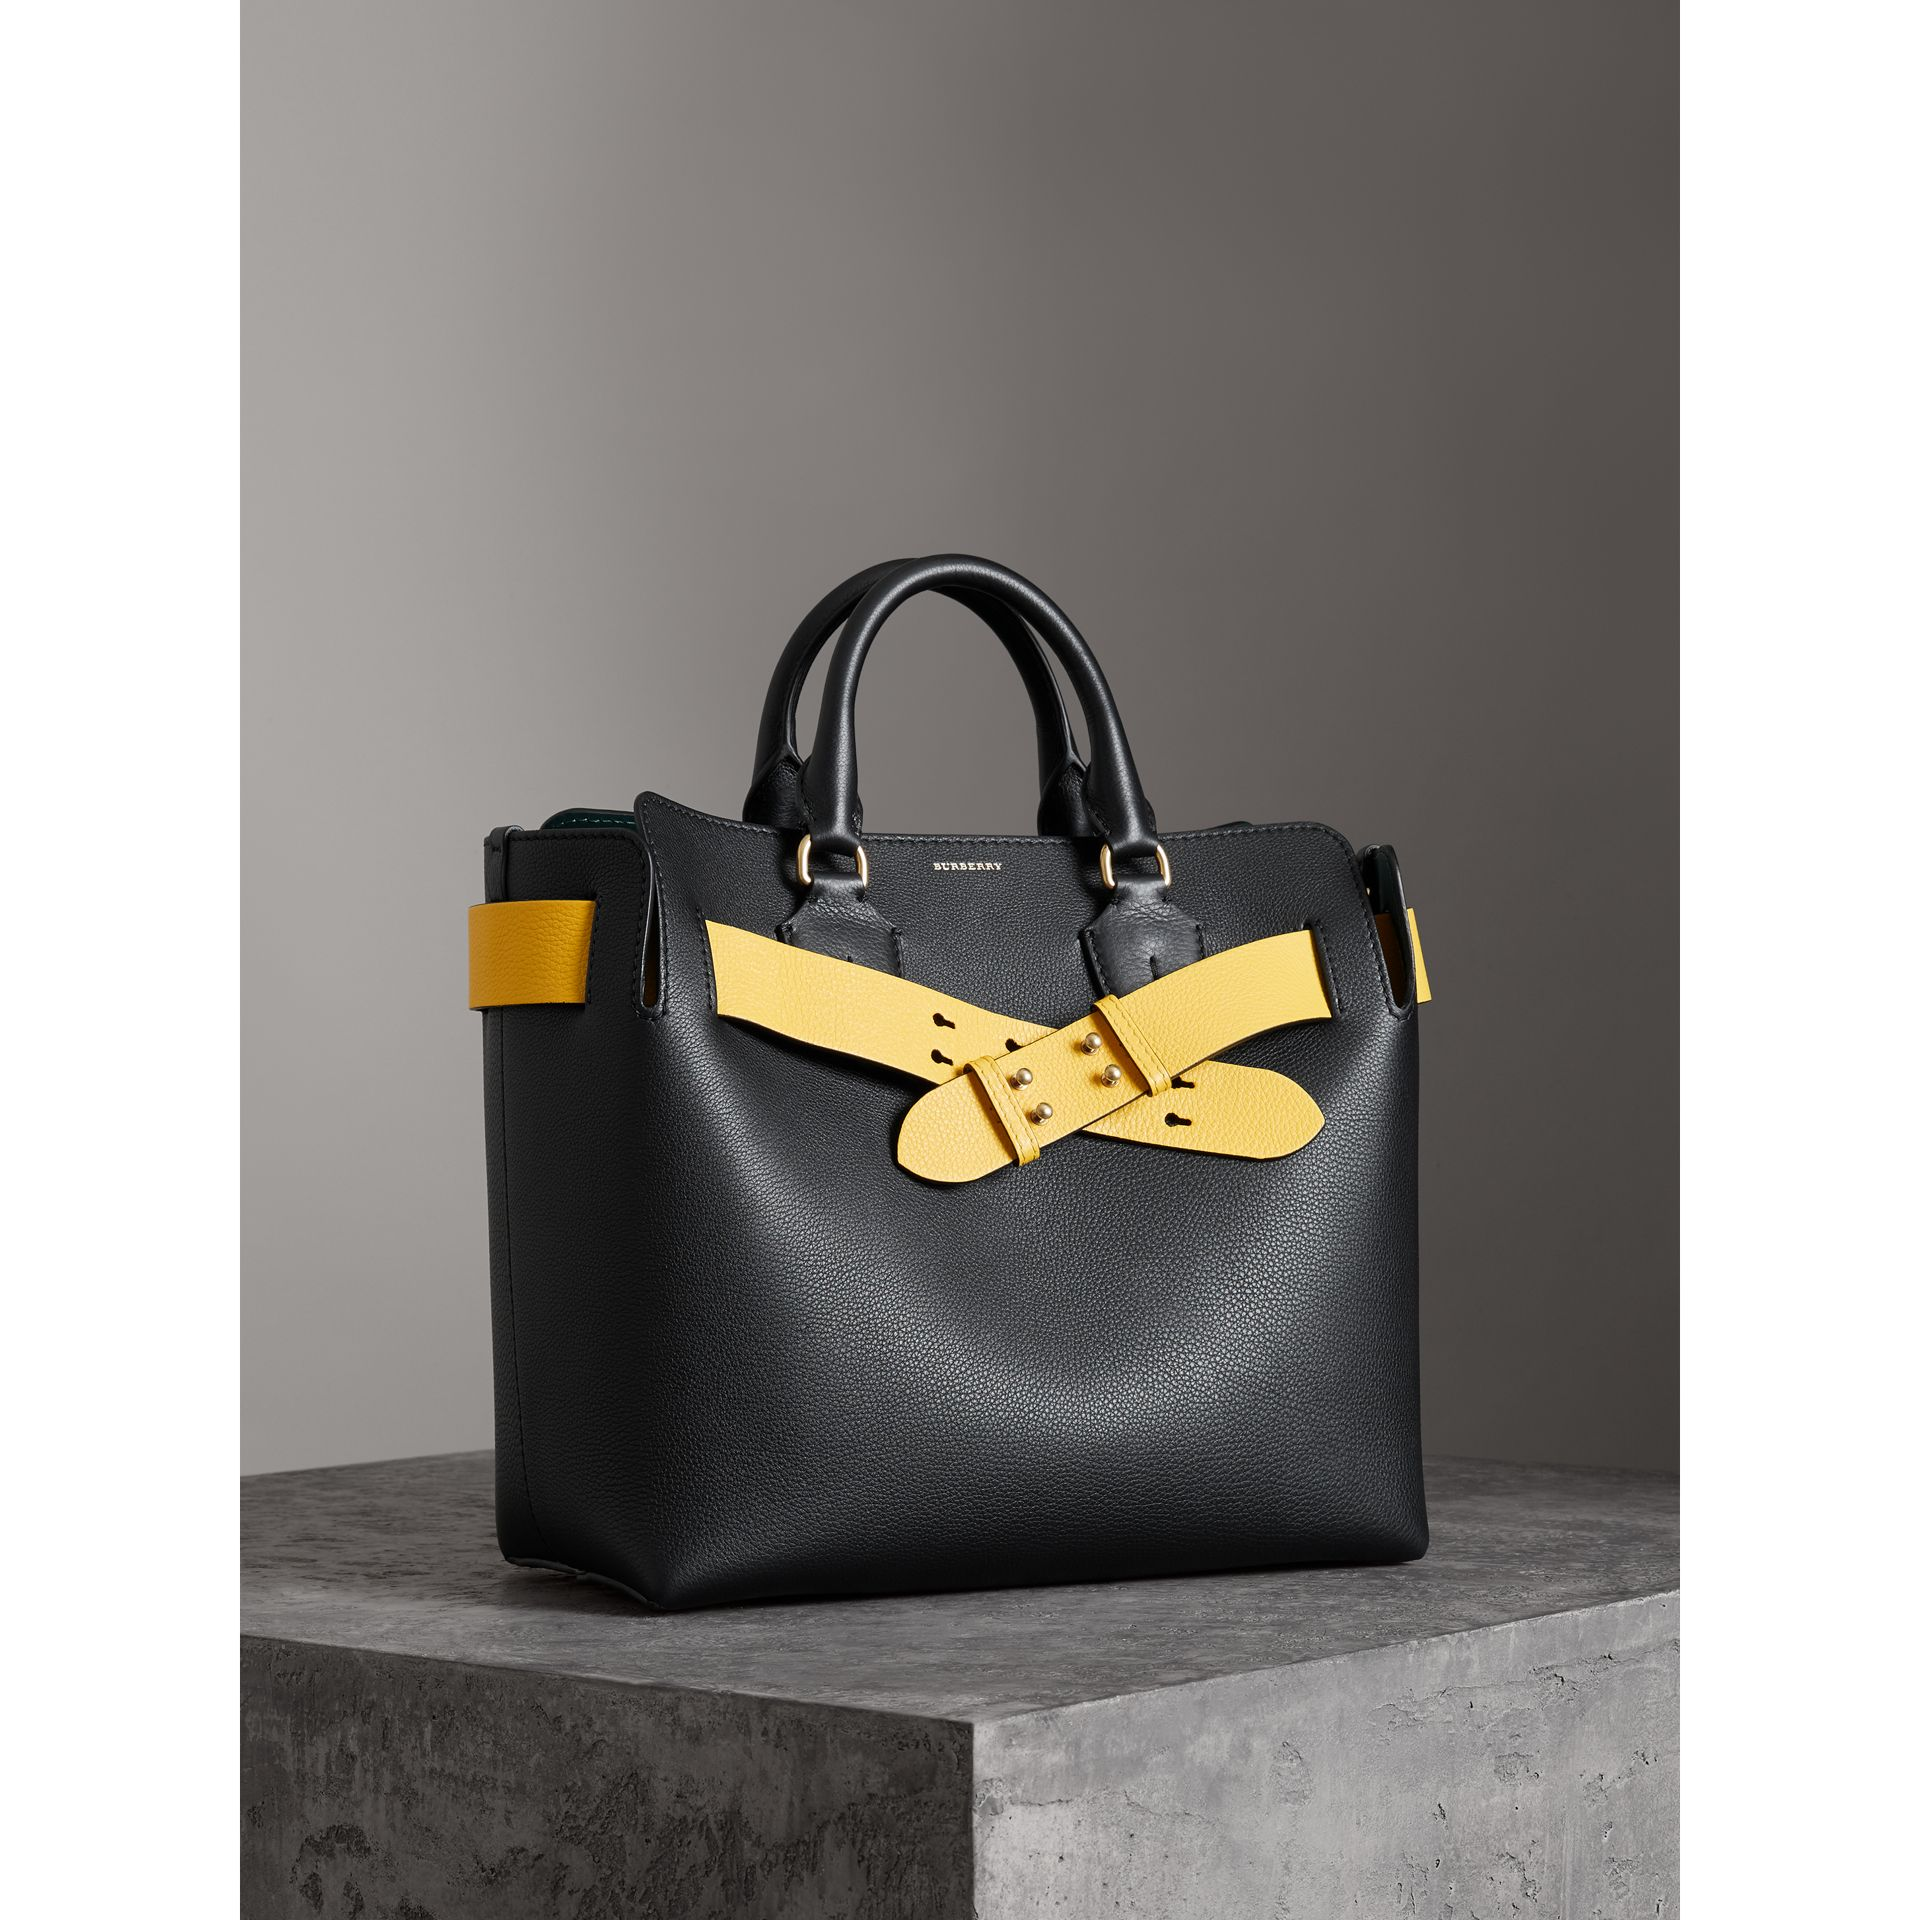 Sac The Belt moyen en cuir (Noir) - Femme | Burberry Canada - photo de la galerie 5